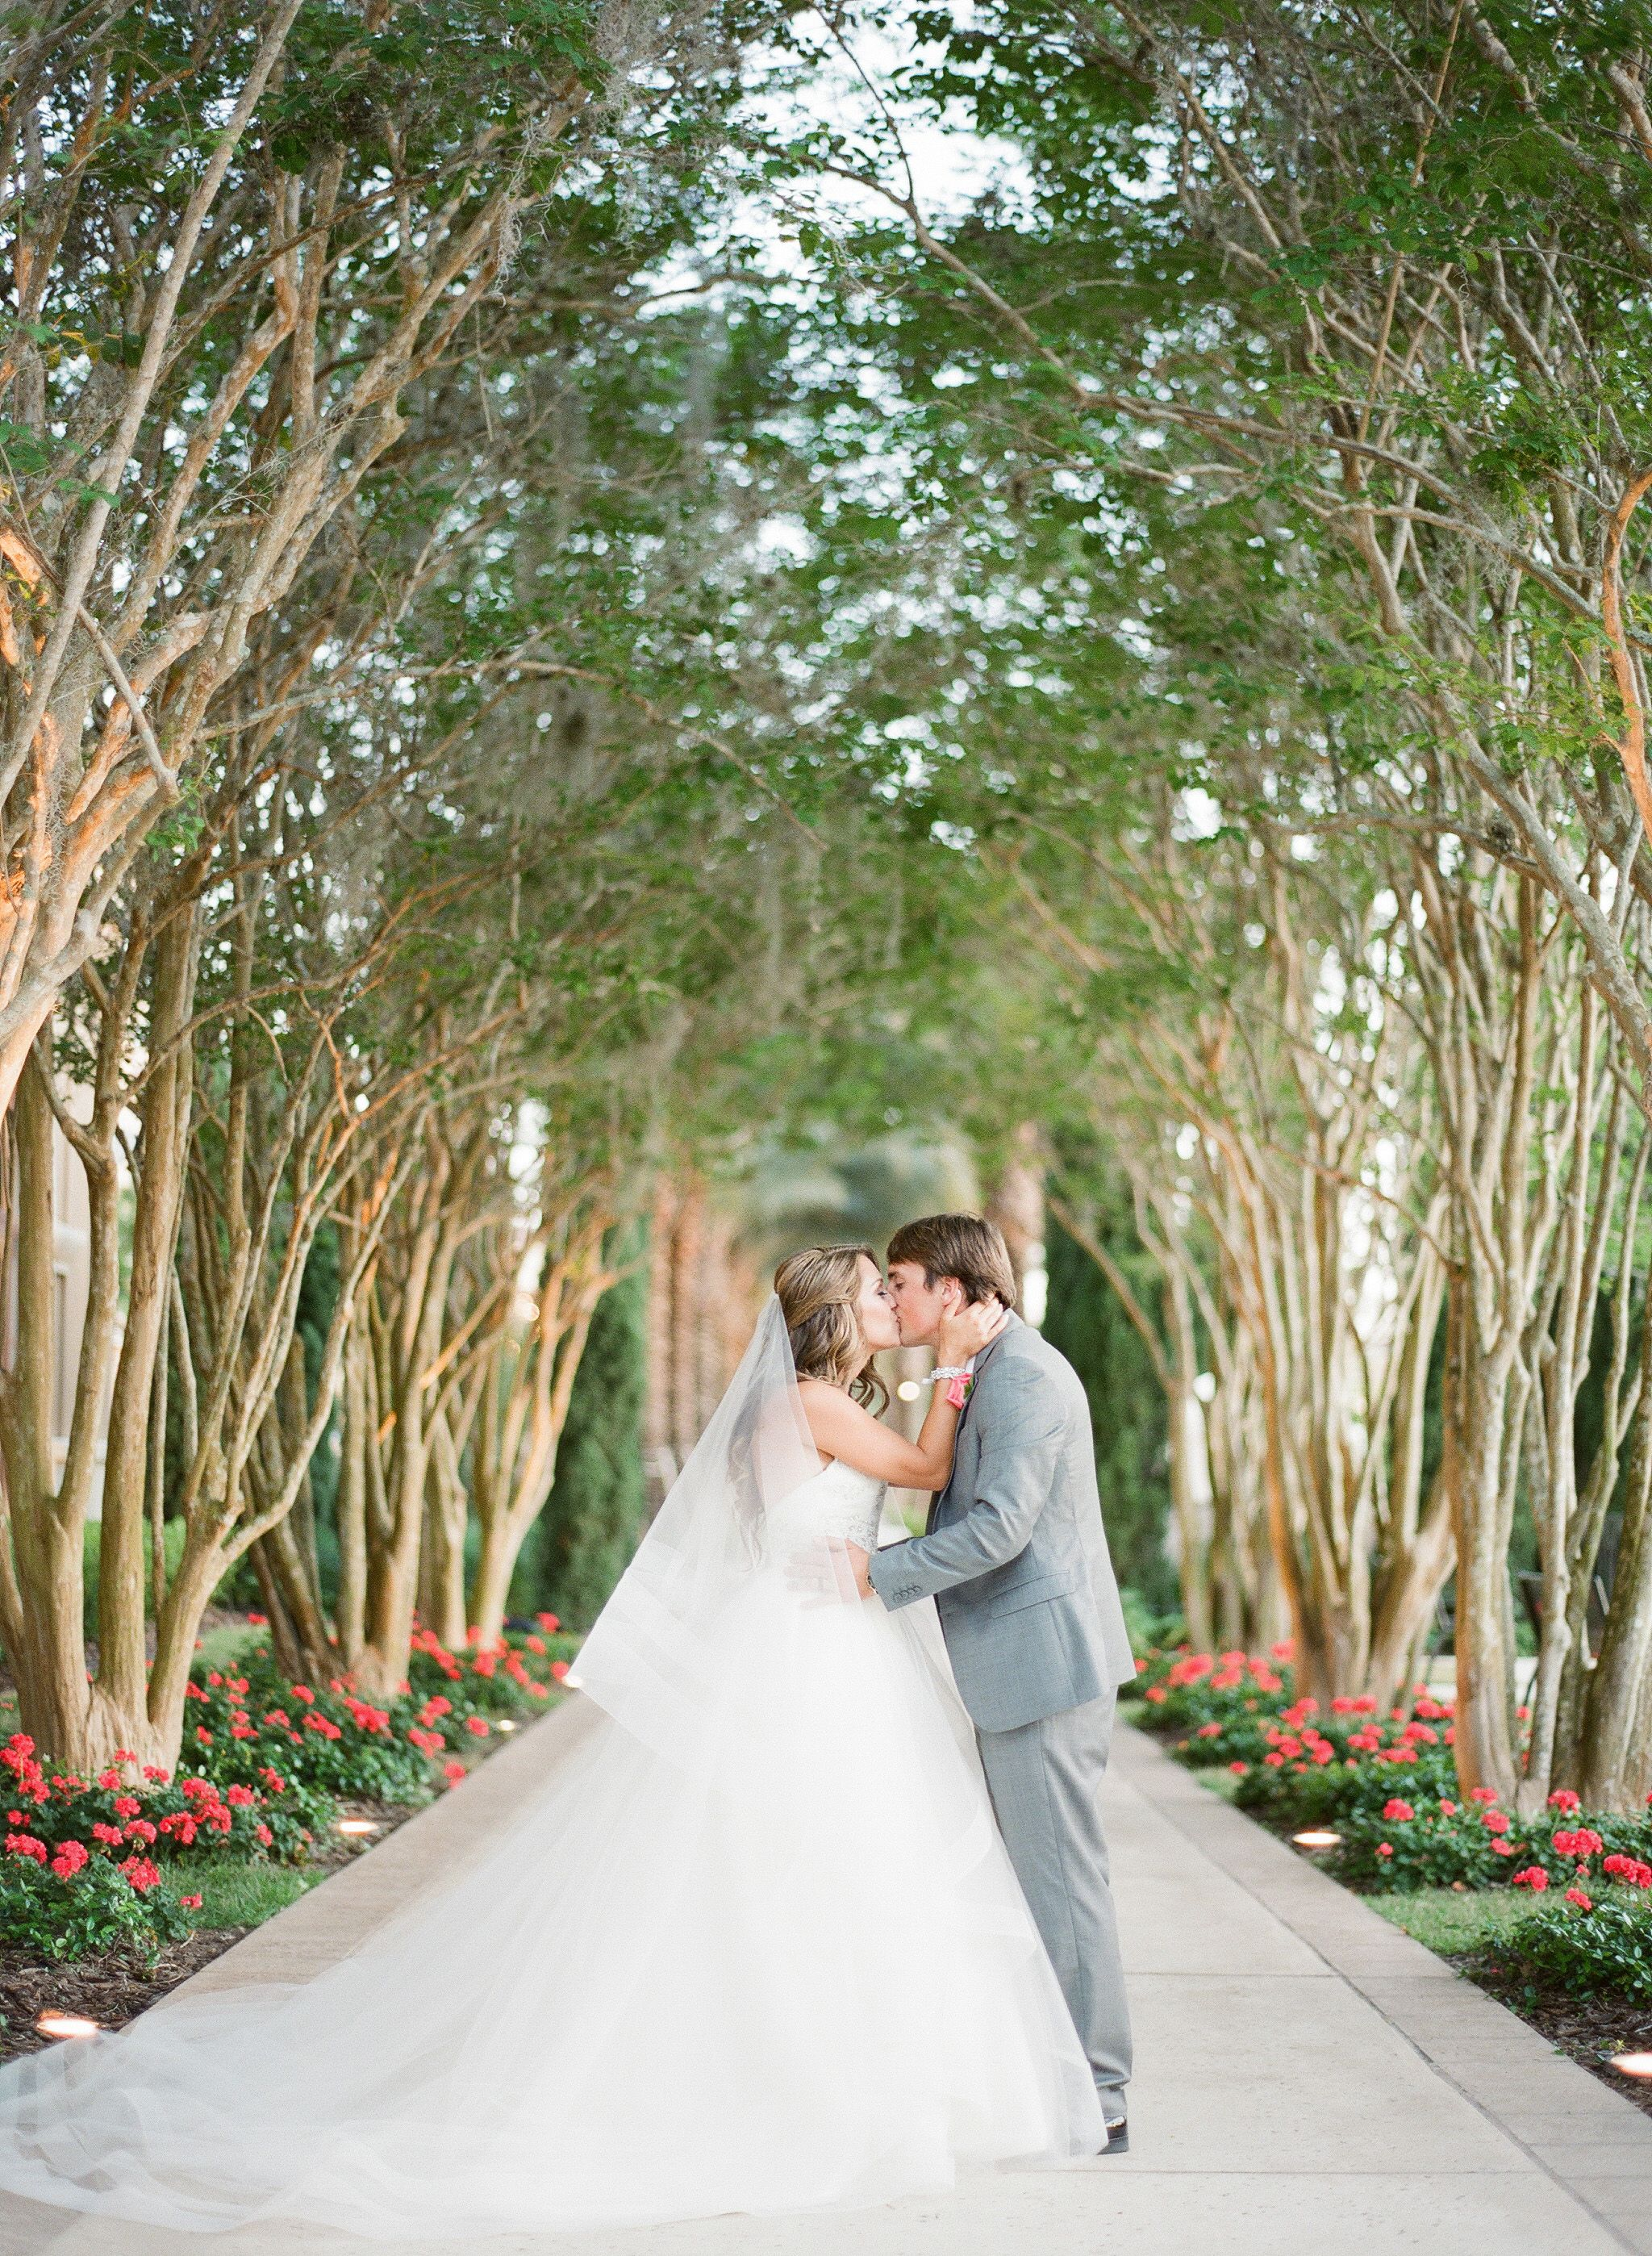 Where To Wed: 20 Florida Wedding Venues That Dazzle